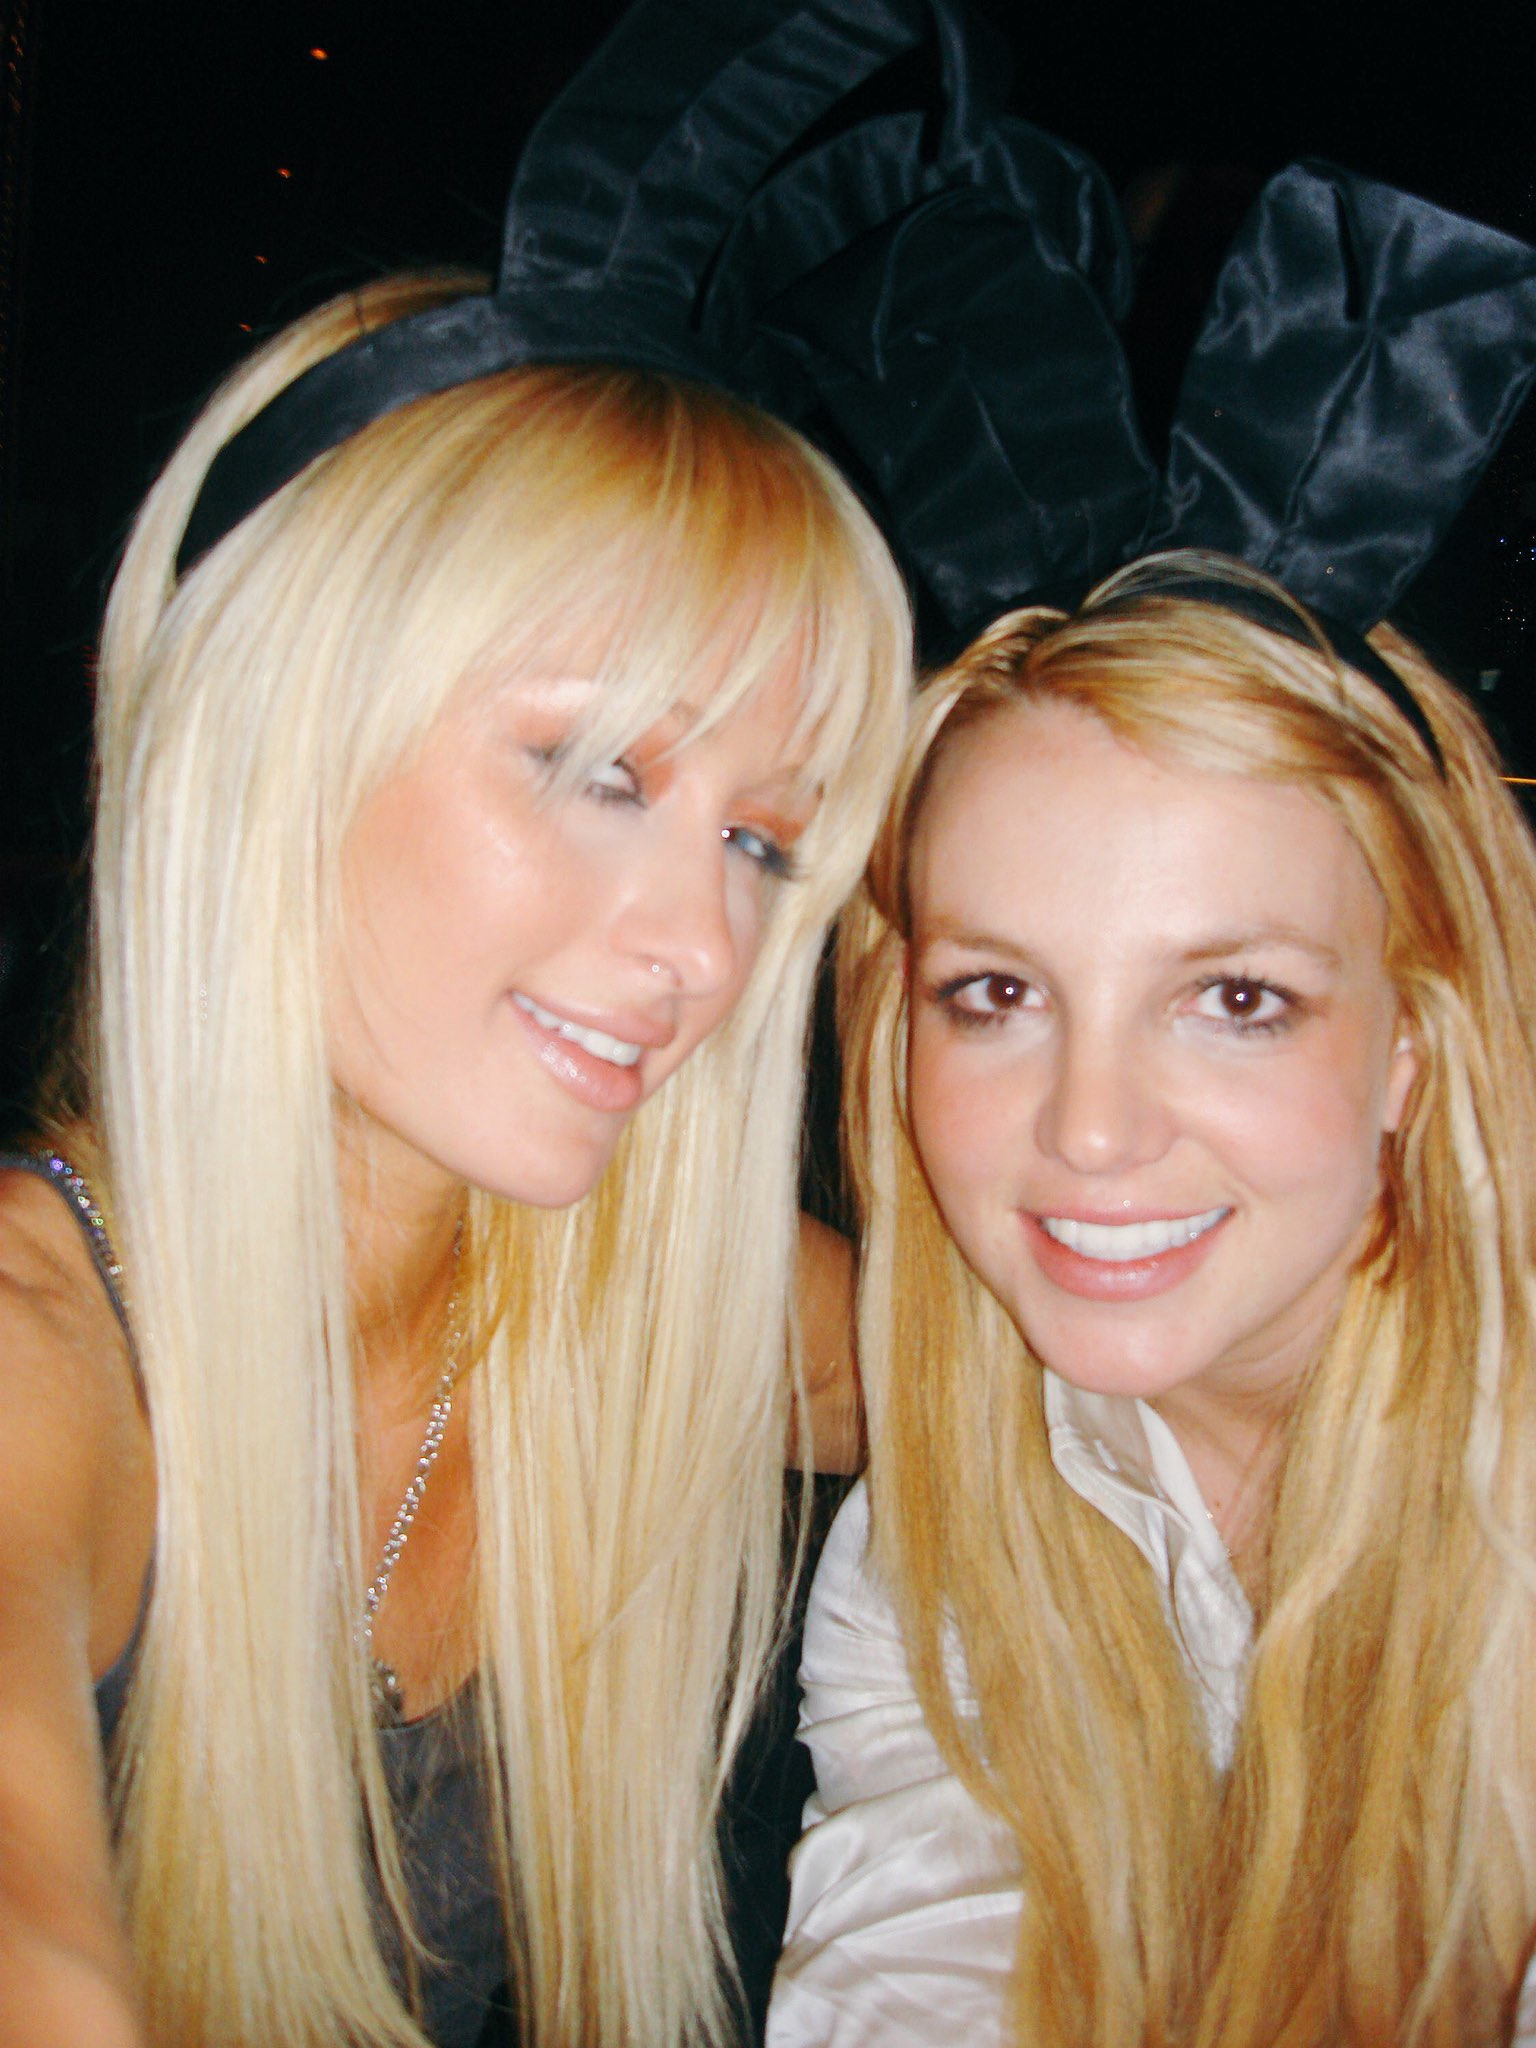 RT @ParisHilton: 11 years ago today, Me & Britney invented the selfie! https://t.co/1byOU5Gp8J